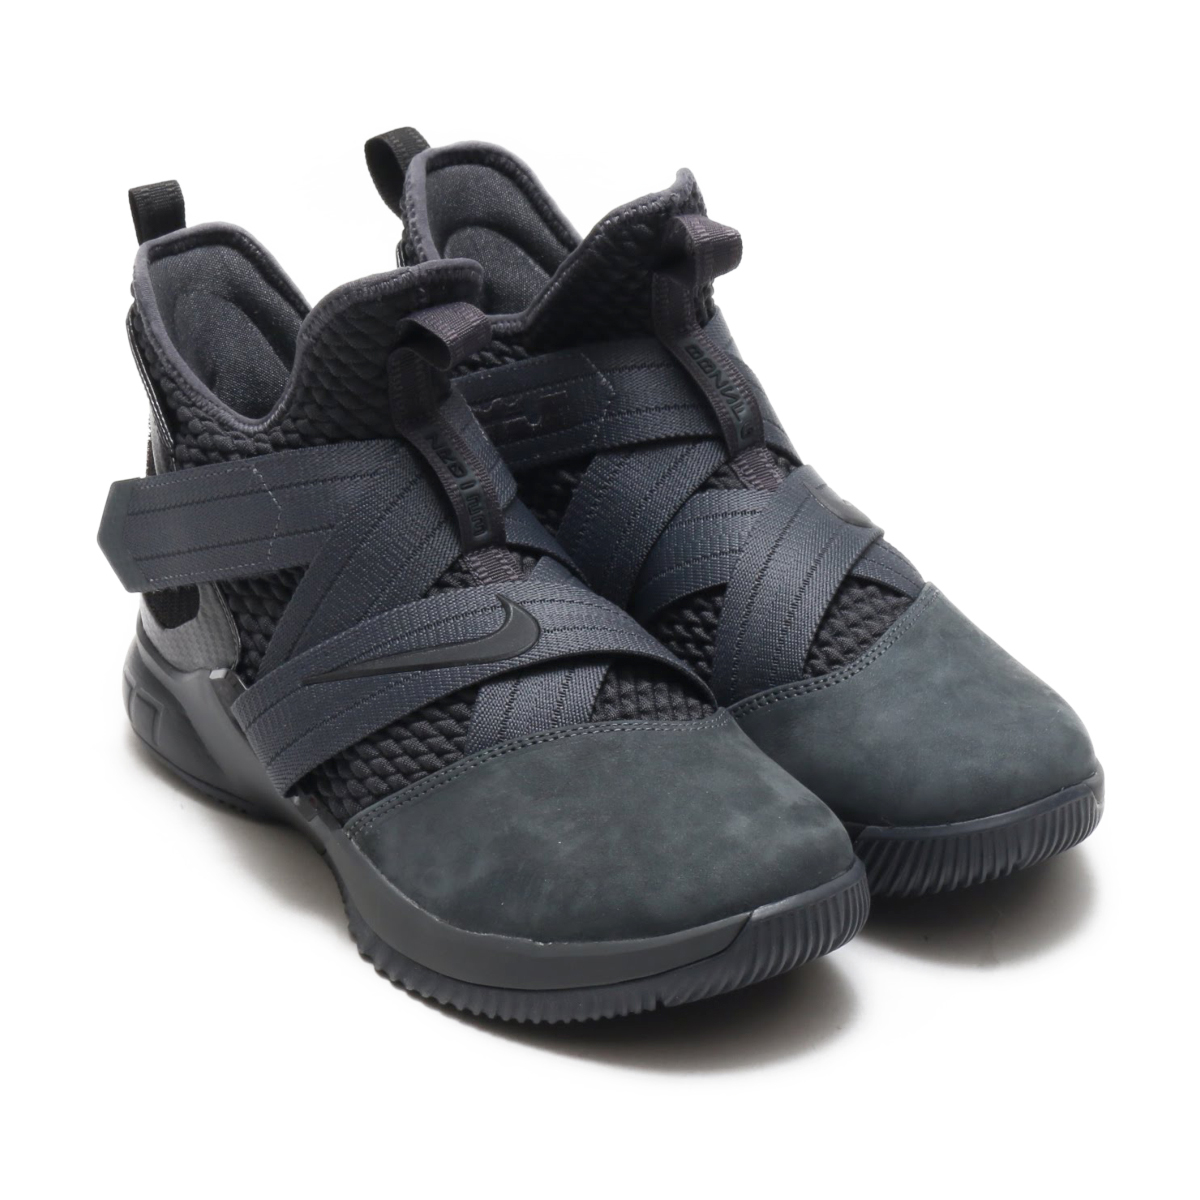 a4547f67de29 NIKE LEBRON SOLDIER XII SFG EP (Nike Revlon soldier XII SFG EP)  (ANTHRACITE ANTHRACITE-BLACK) 18SU-S